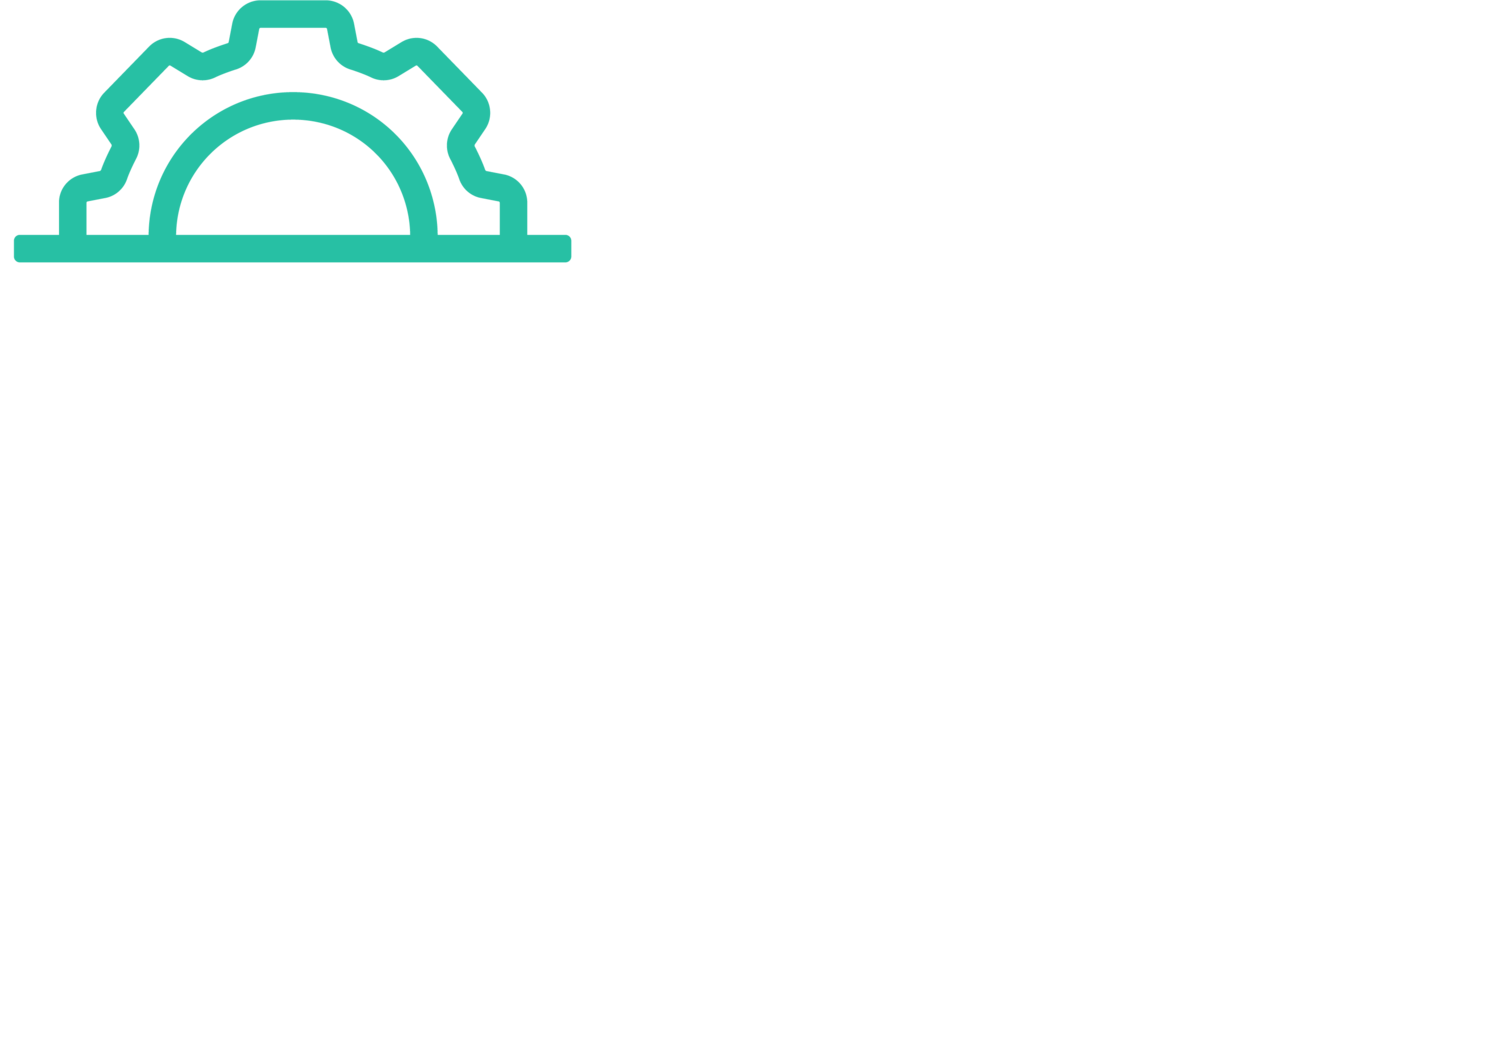 Law Tech Factory